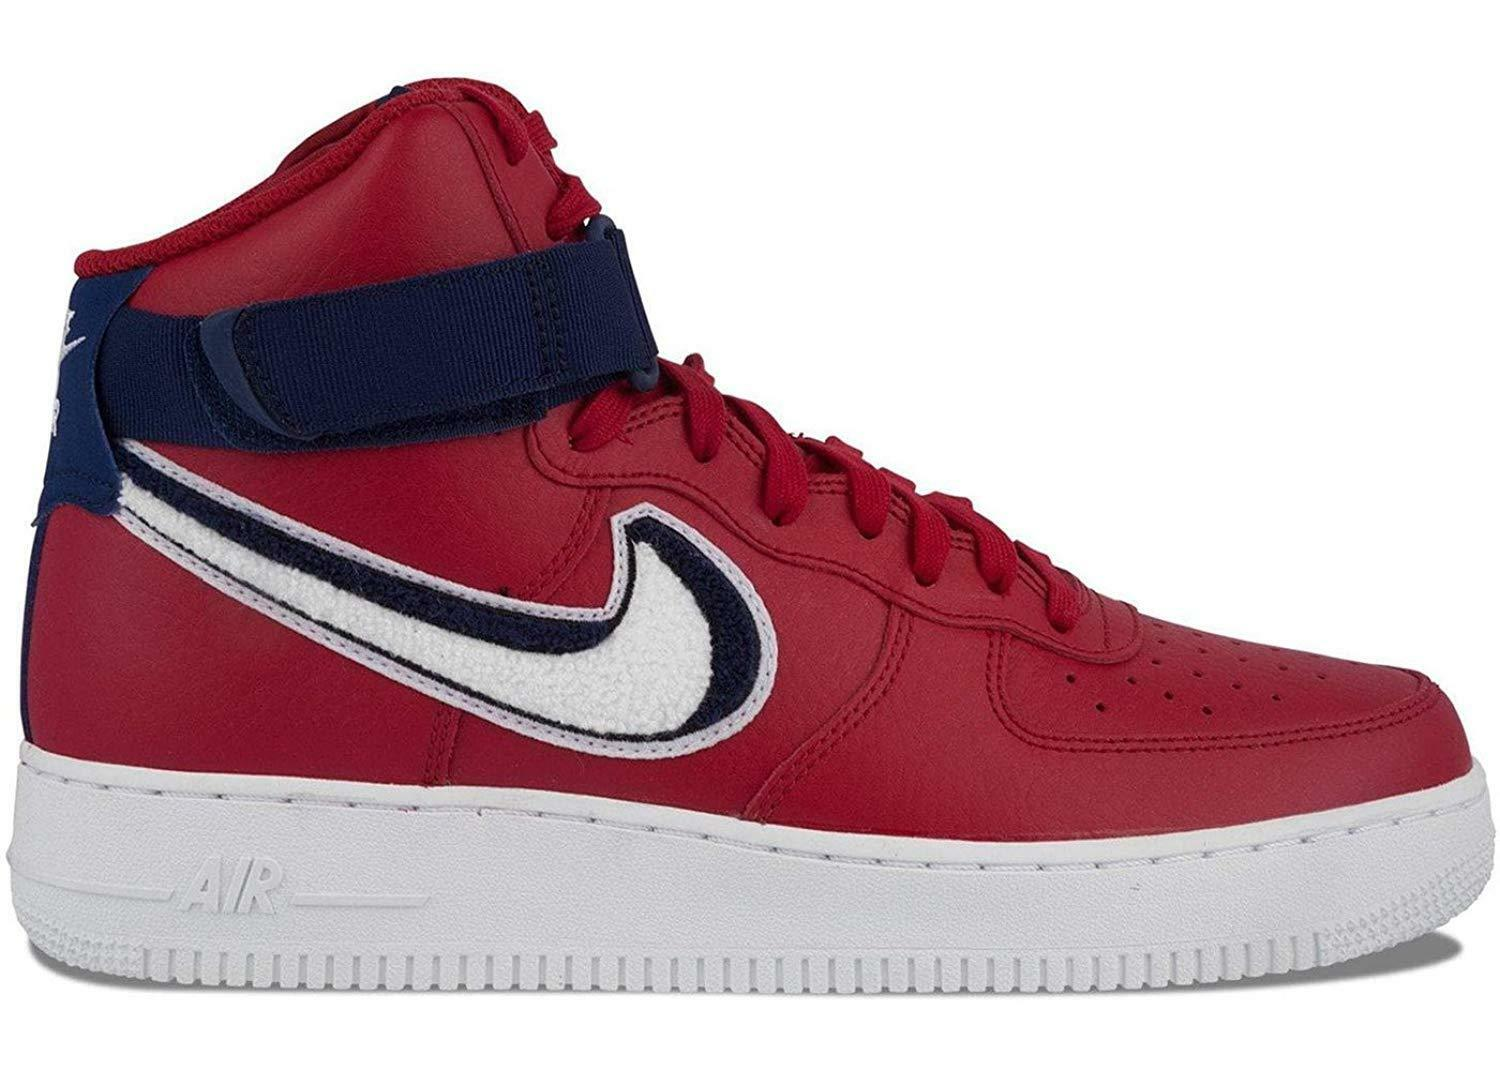 Nike Air Force 1 High '07 LV8 Gym Red/White-Blue Void-White Price reduction Brand discount